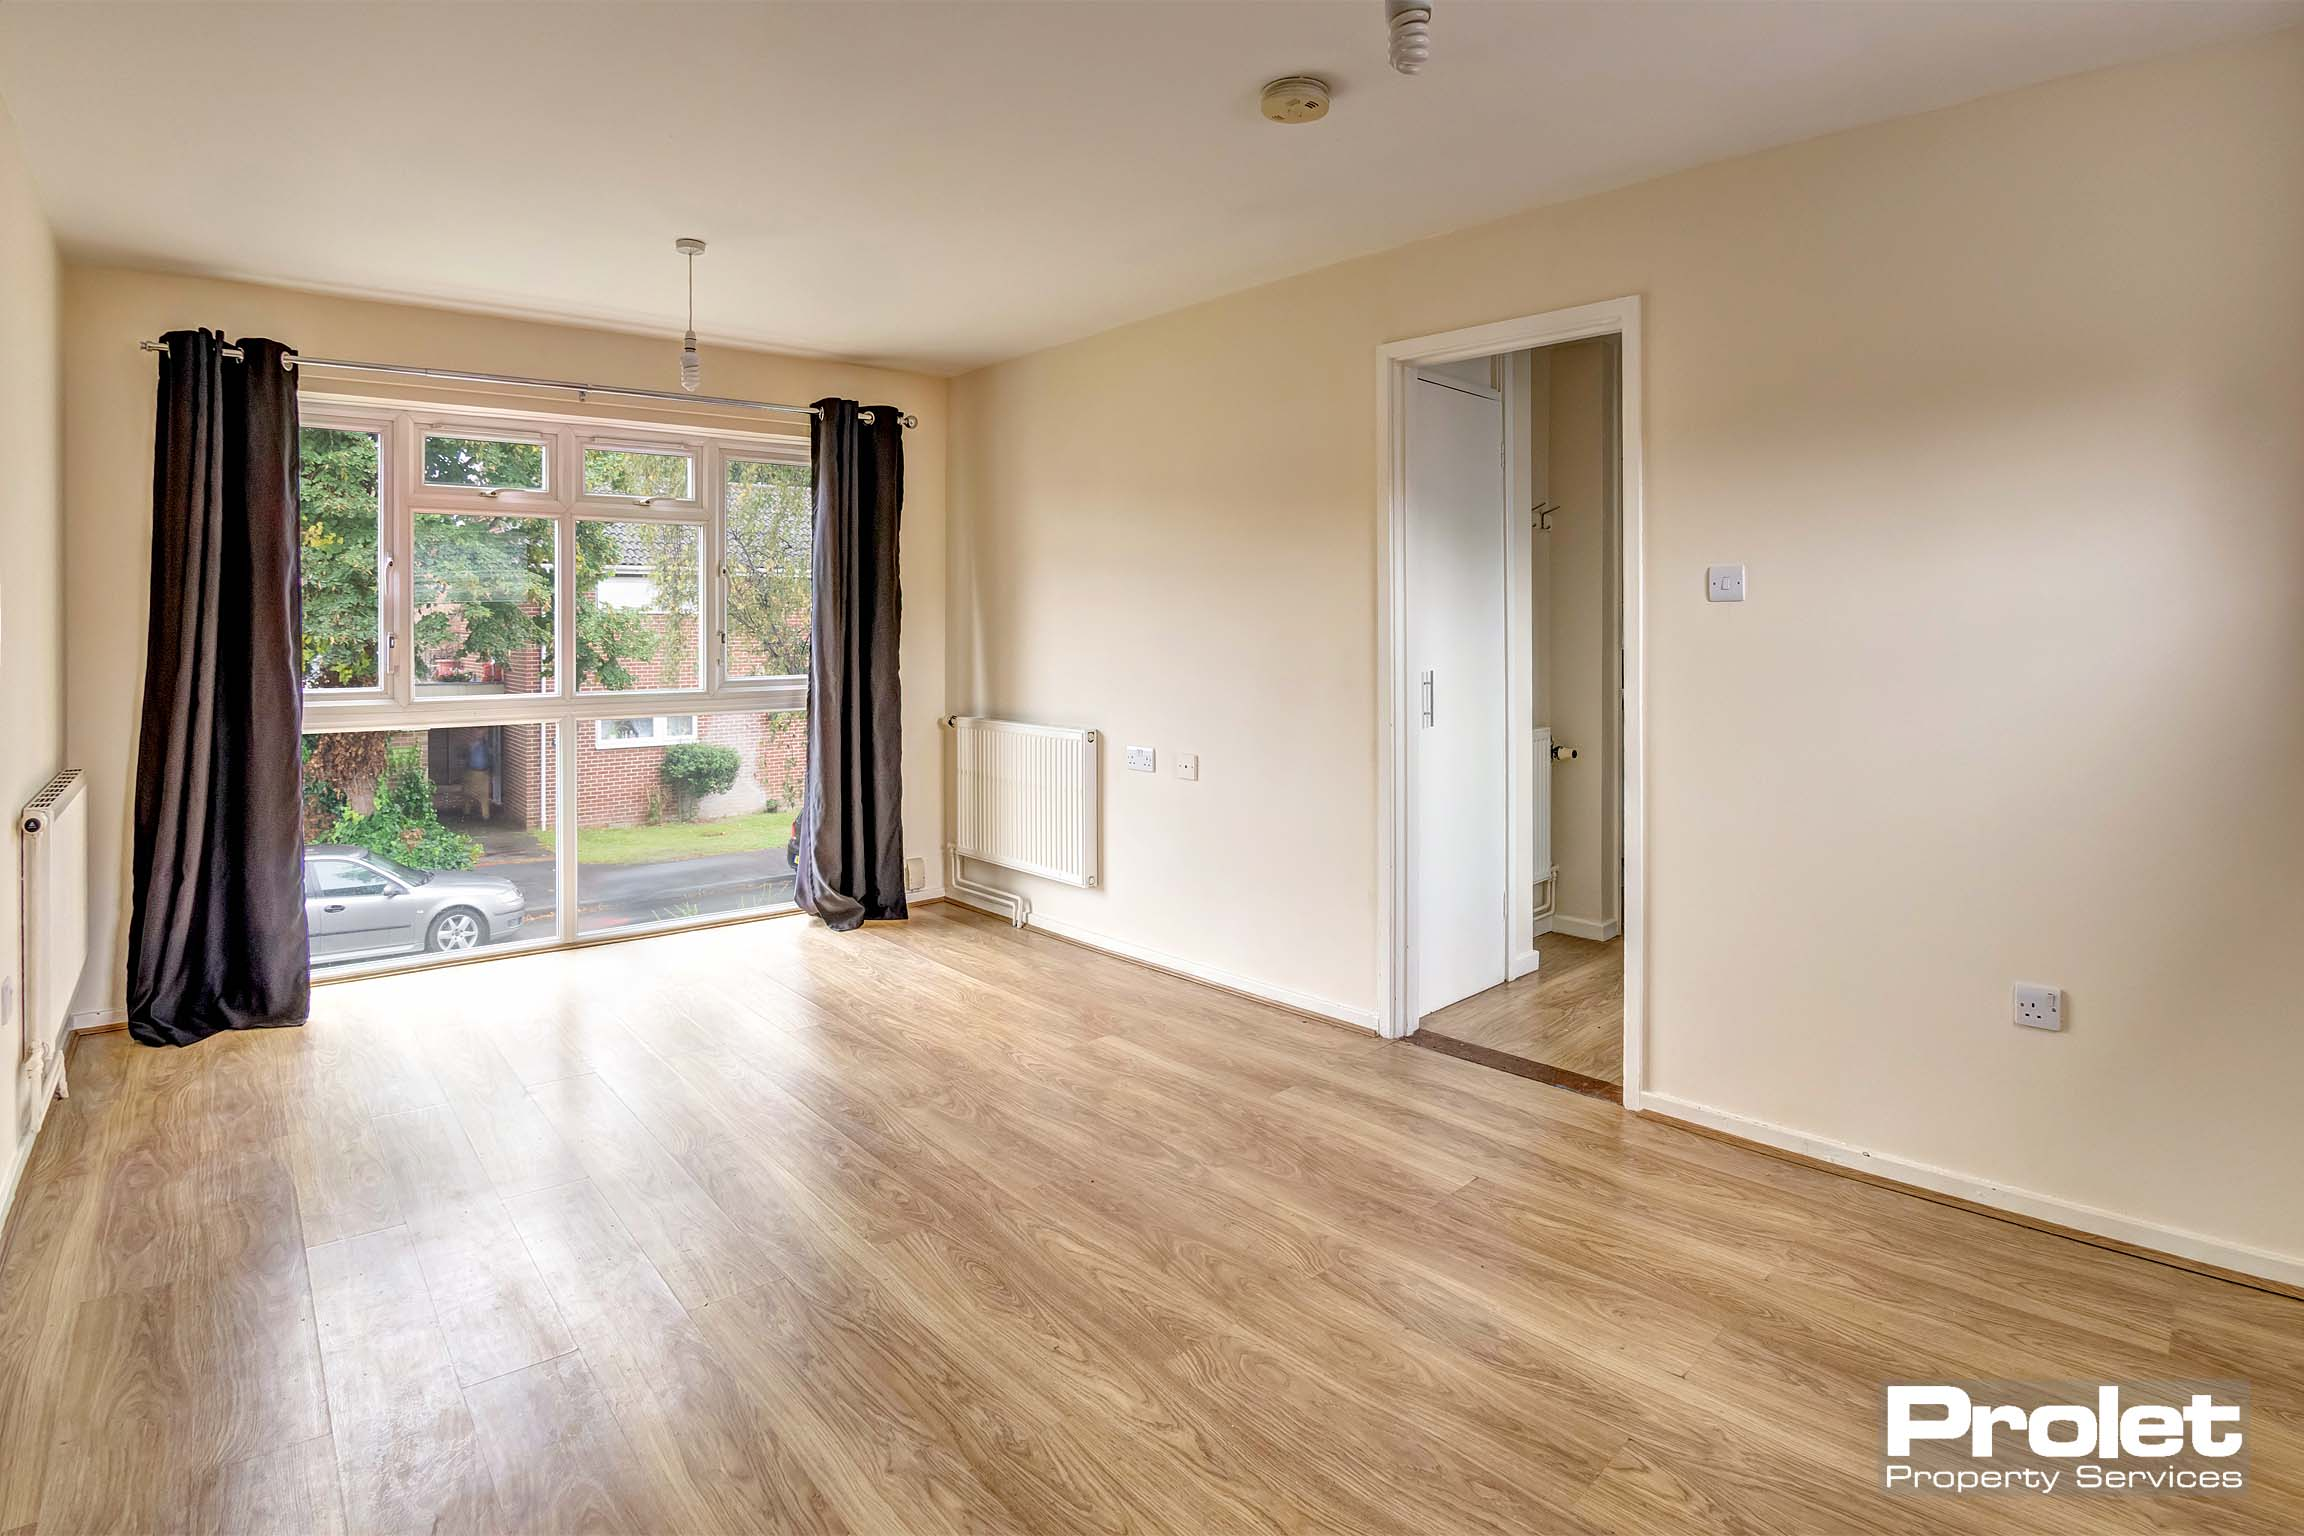 Booking a viewing for Russell Street, Norwich, NR2 4QU